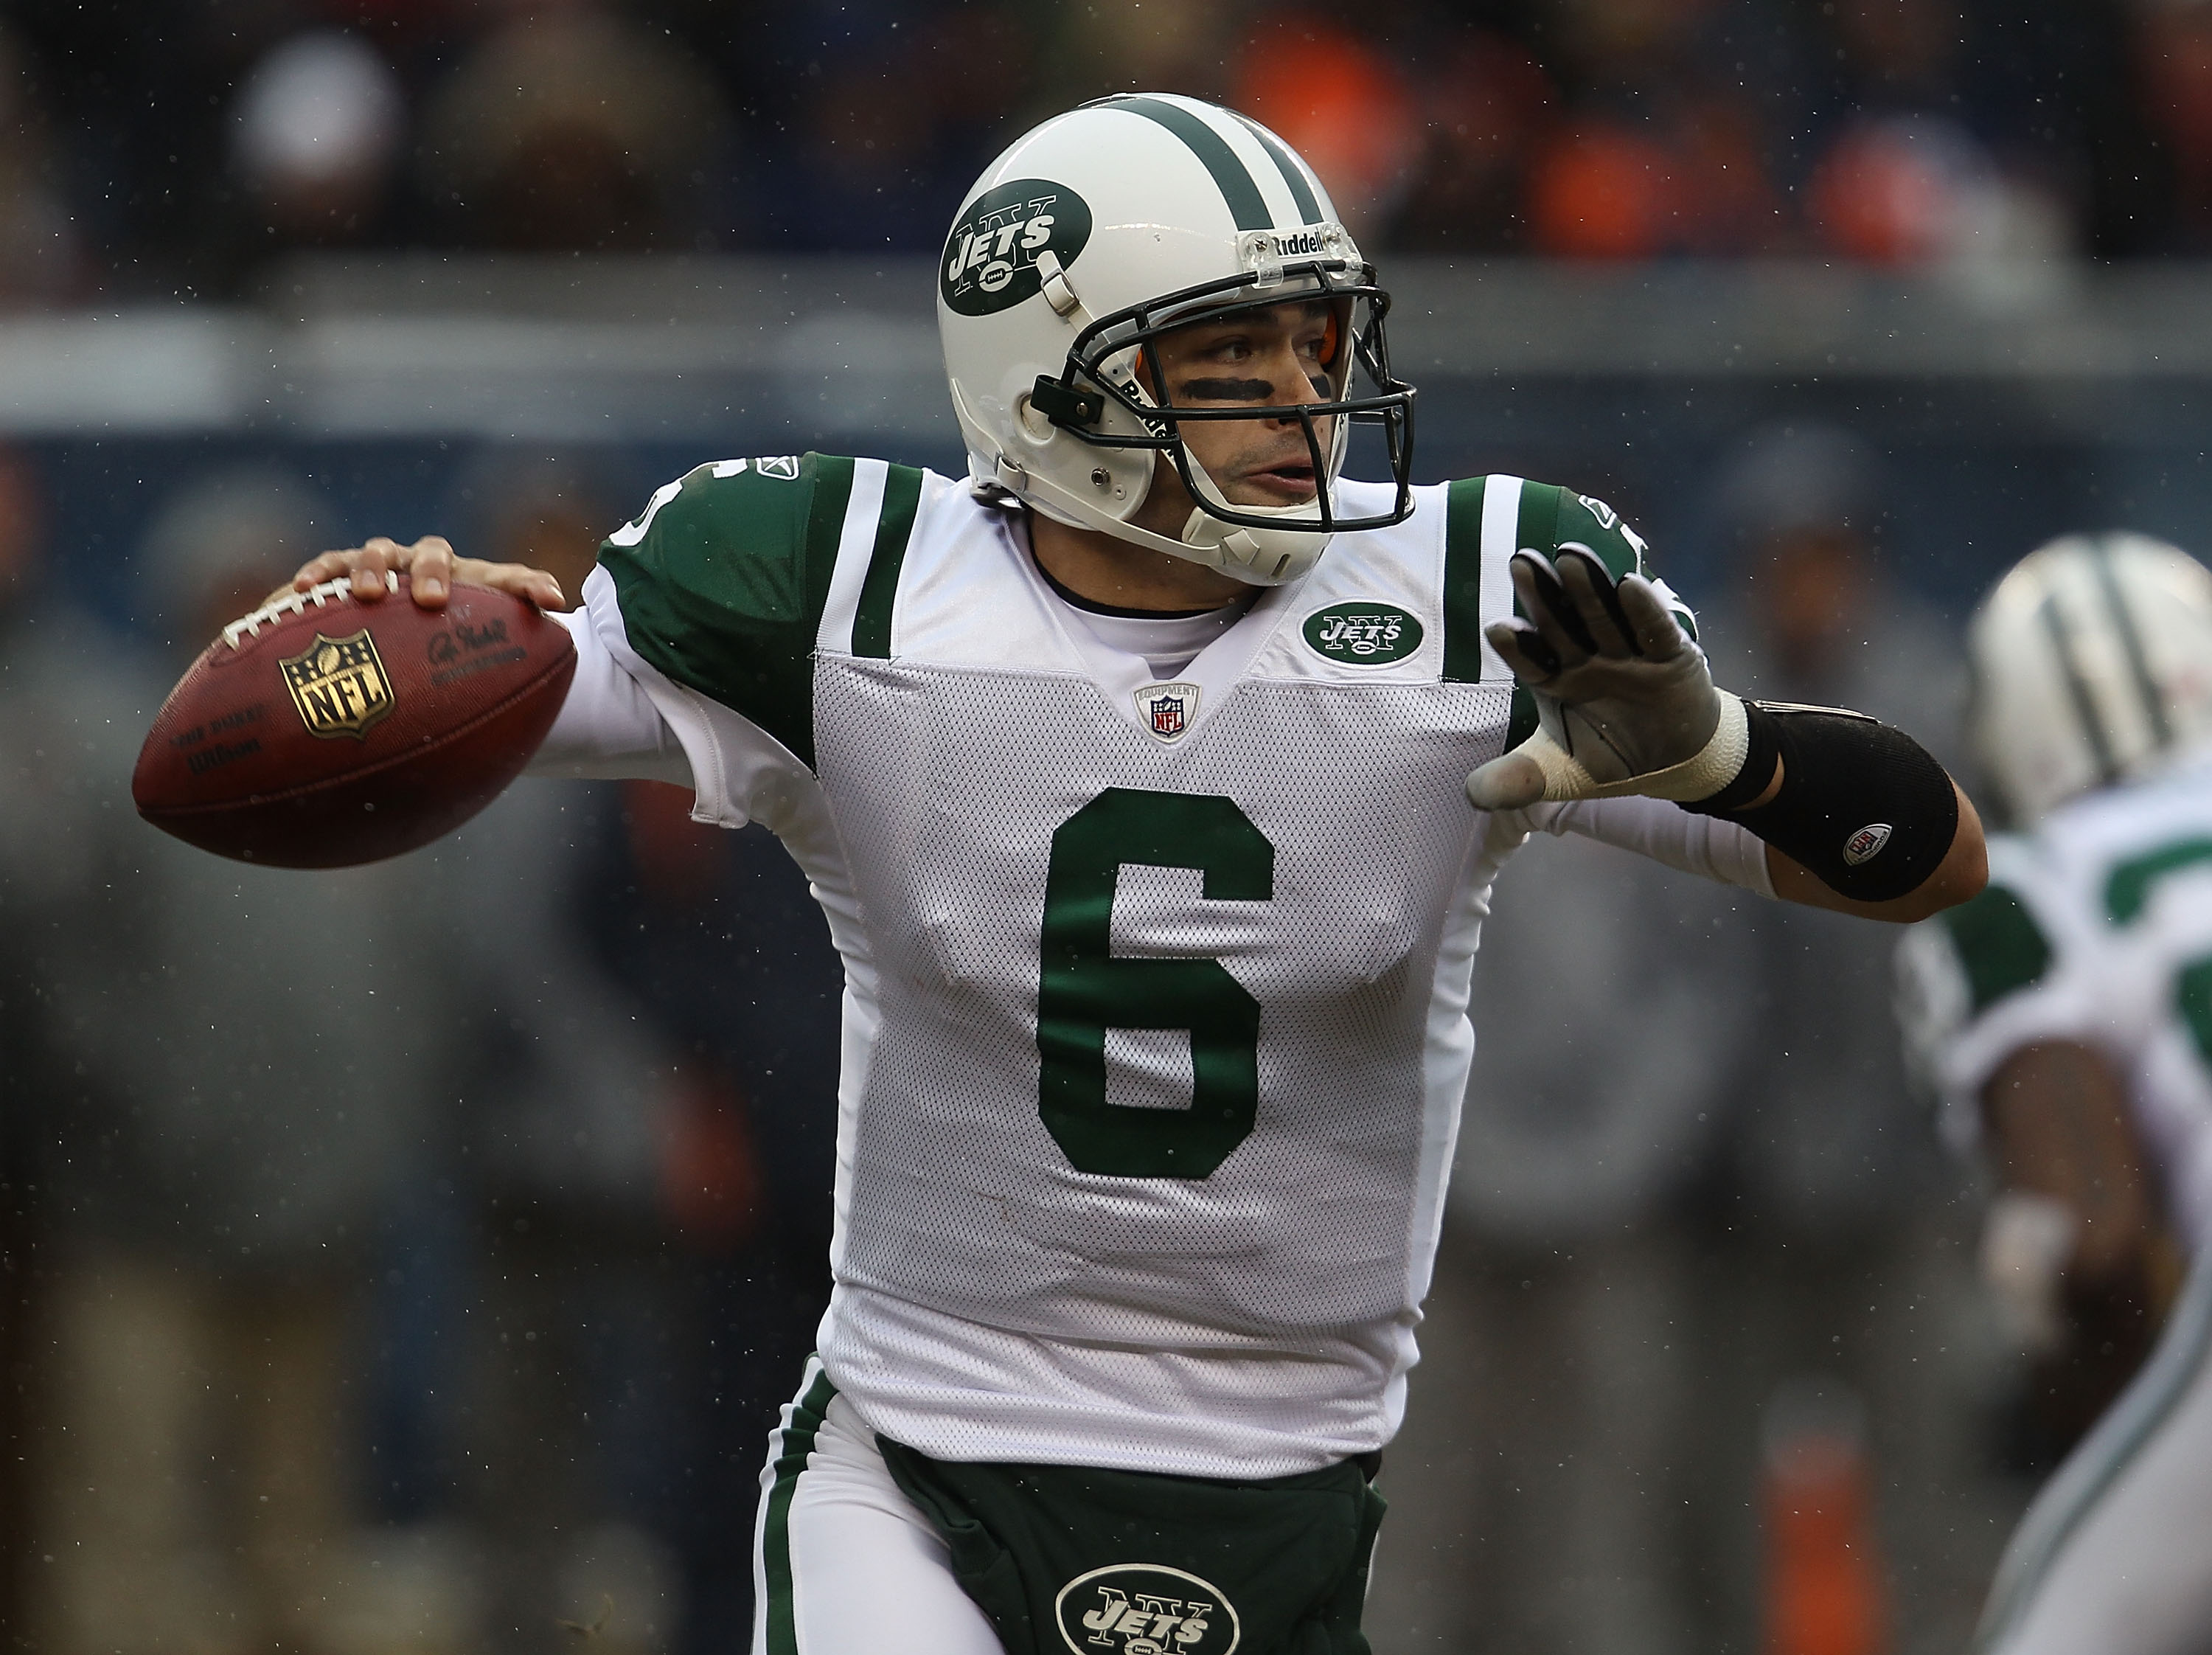 CHICAGO, IL - DECEMBER 26: Mark Sanchez #6 of the New York Jets looks for receiver against the Chicago Bears at Soldier Field on December 26, 2010 in Chicago, Illinois. (Photo by Jonathan Daniel/Getty Images)